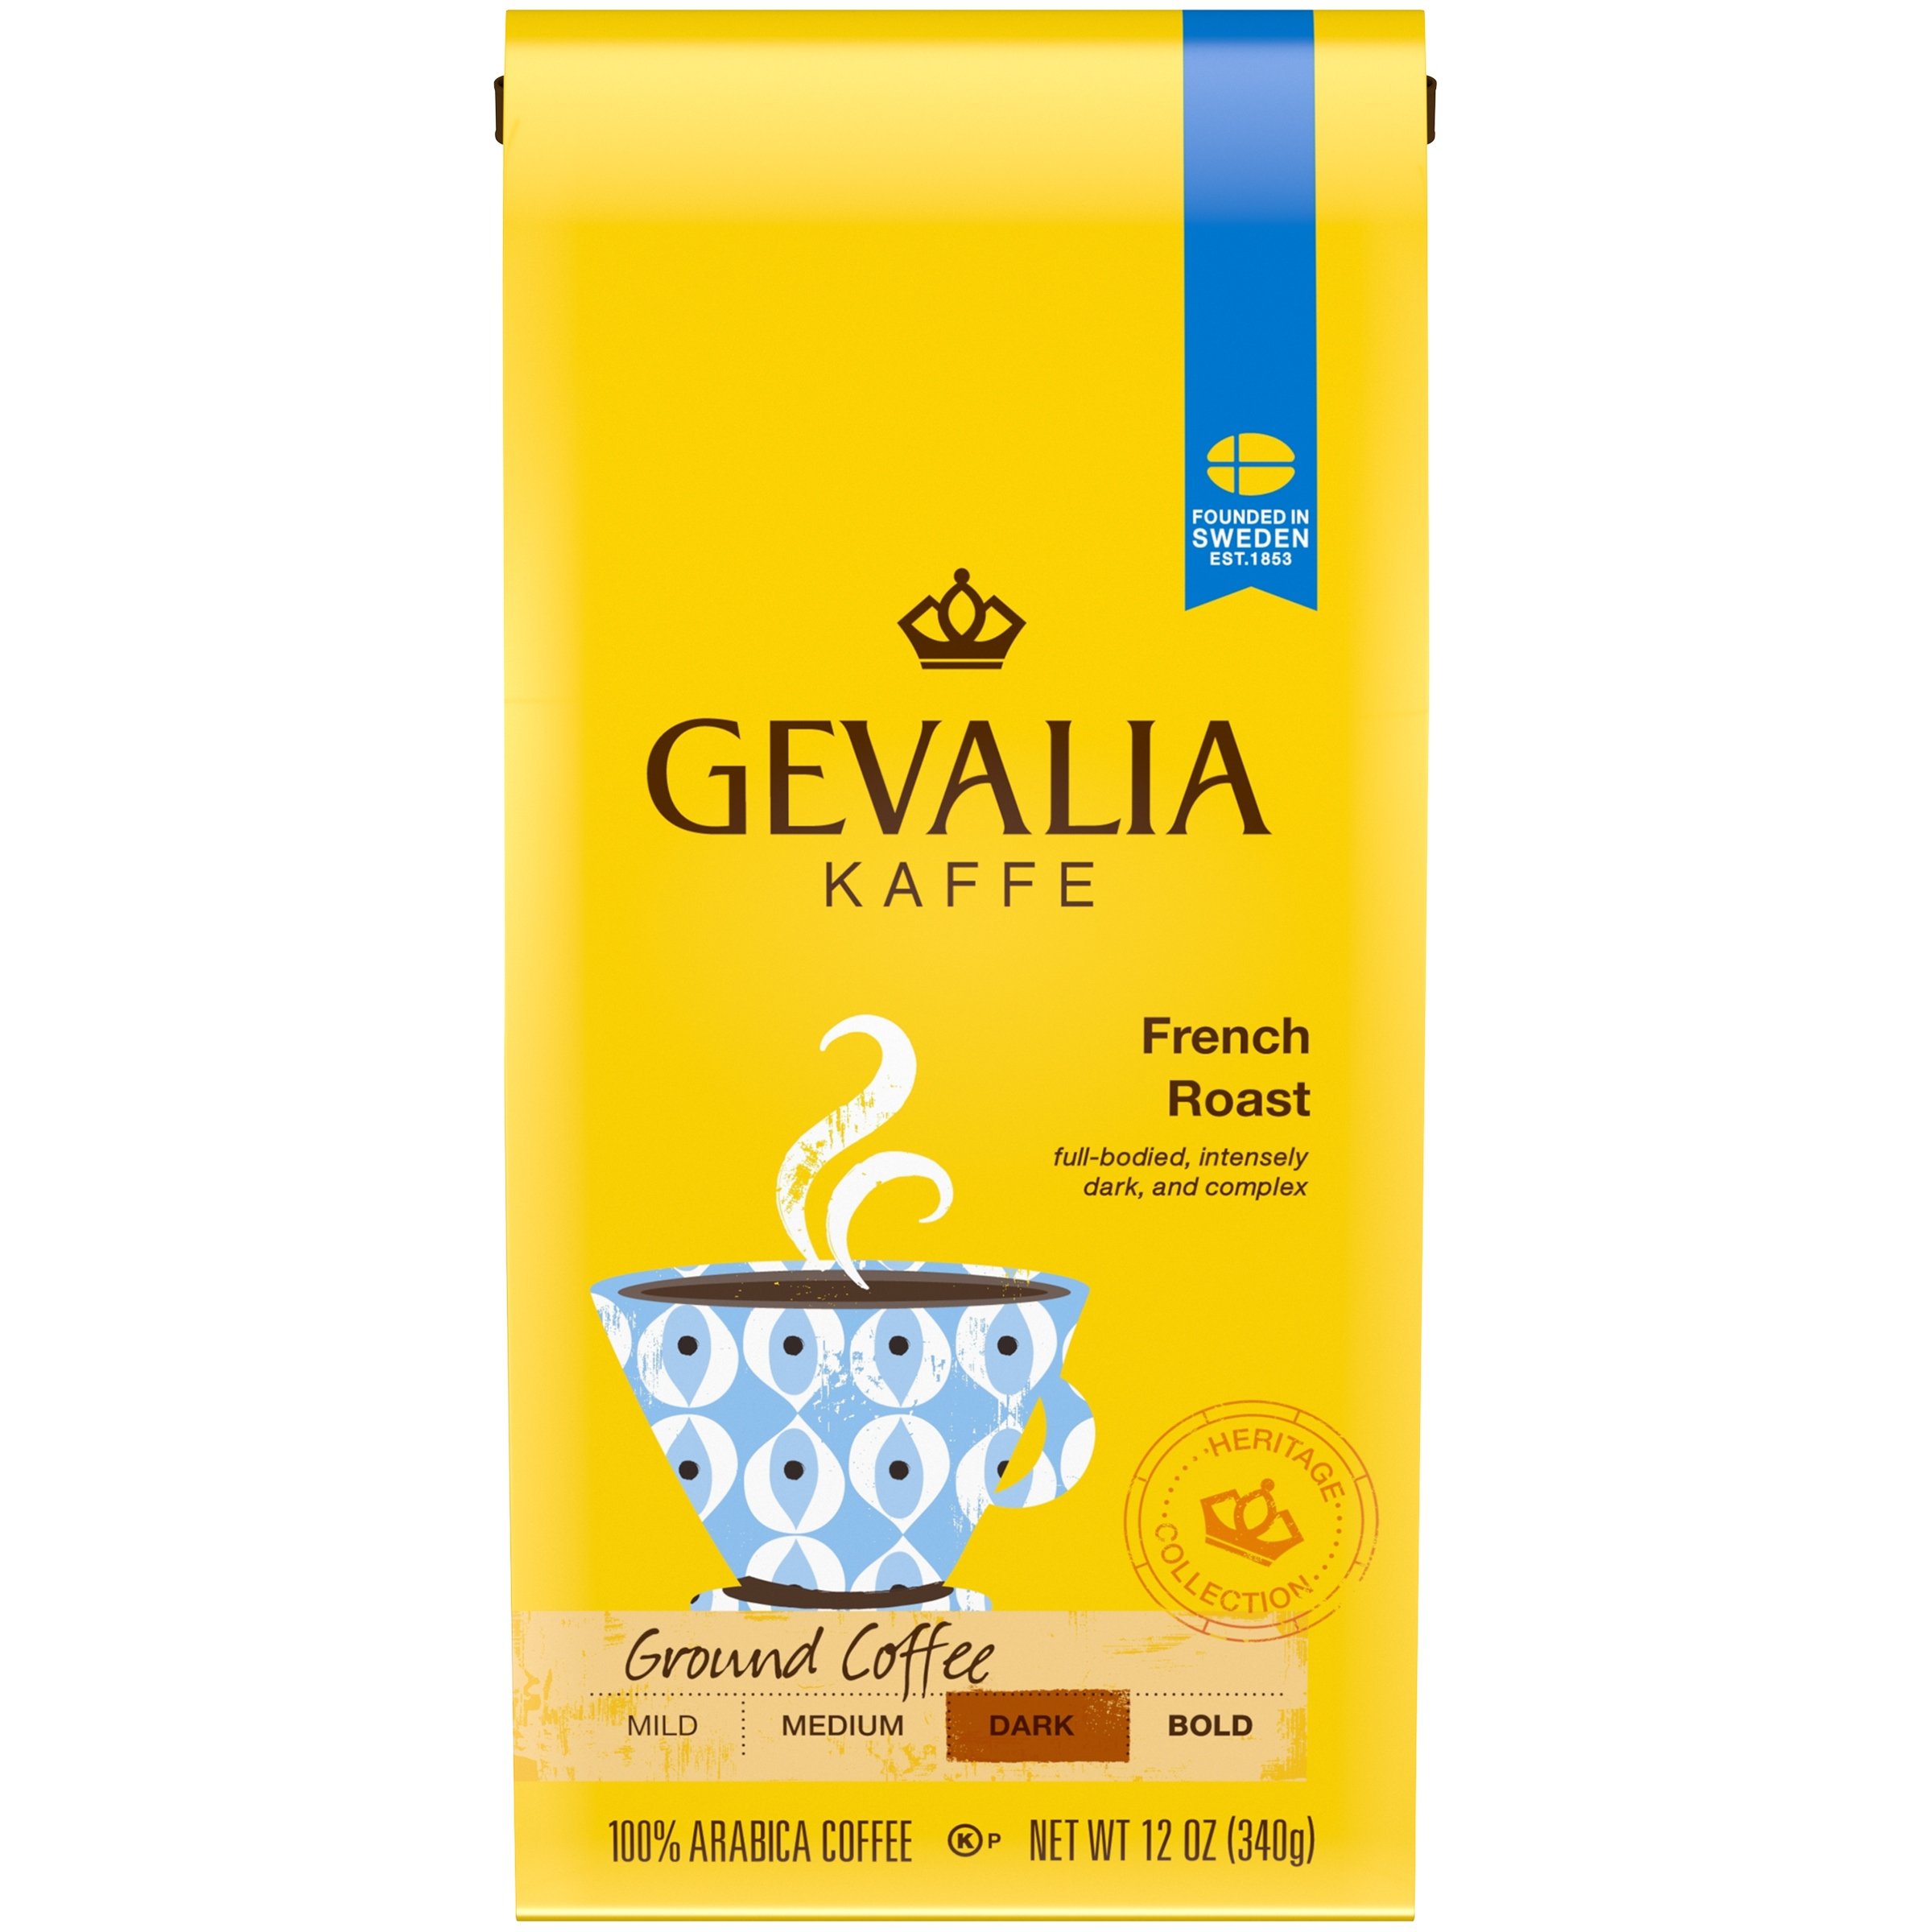 Gevalia Heritage Collection French Roast Ground Coffee 12 oz. Bag